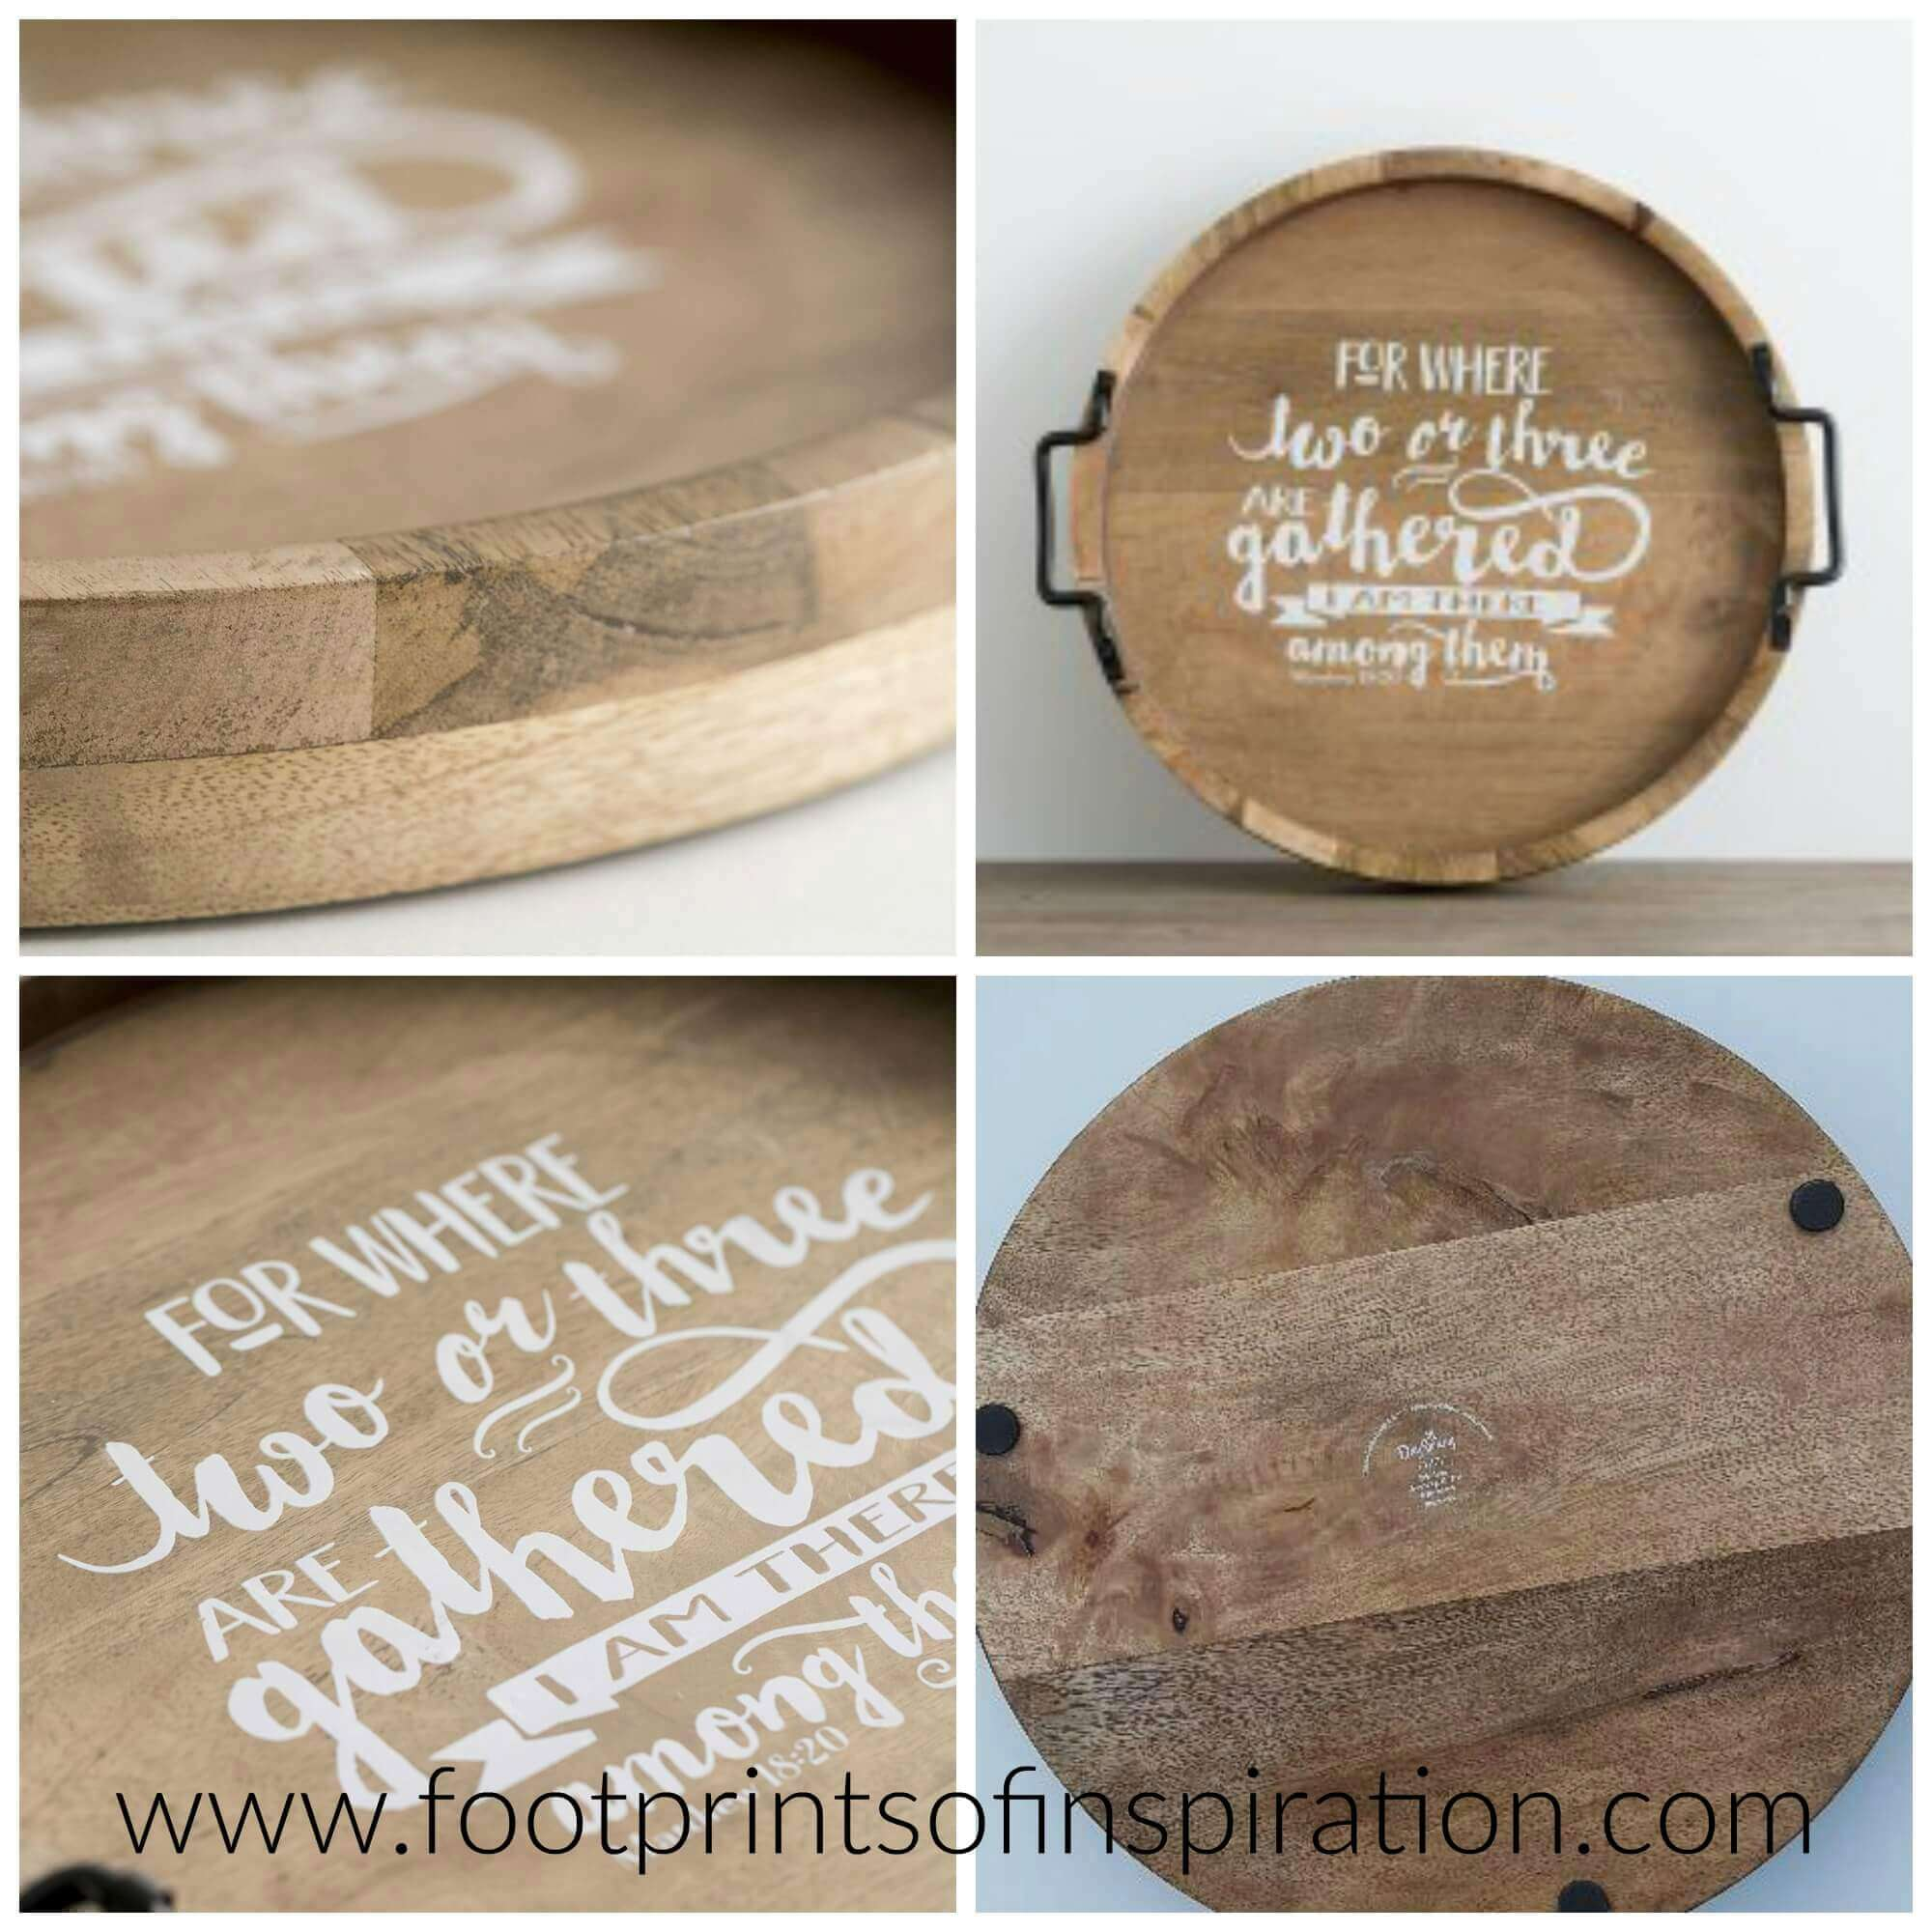 Are you looking for a beautiful, well made, inspirational gift? Check out this gorgeous wooden tray from DaySpring!